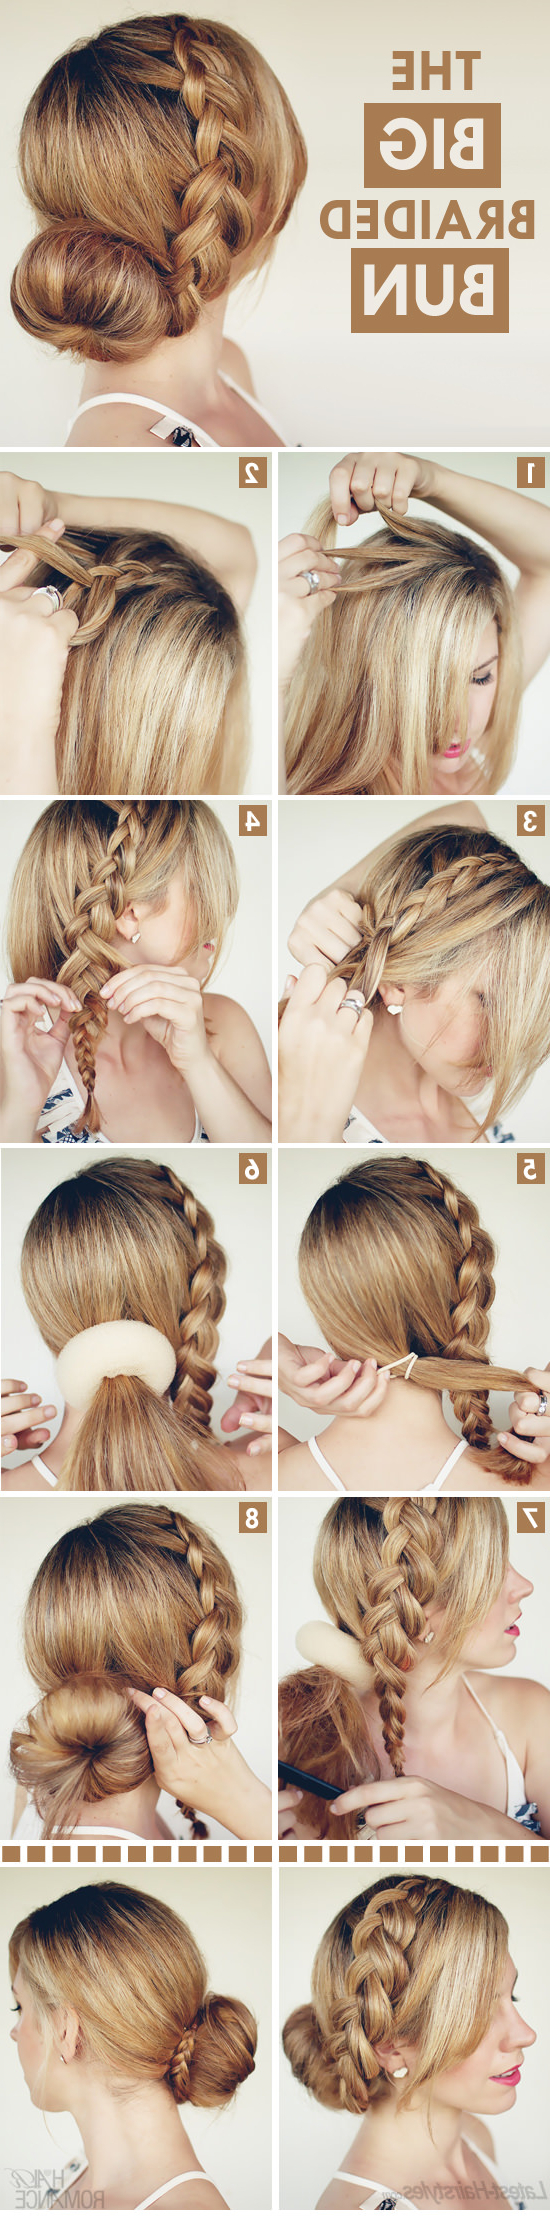 Big Braided Bun Hair Tutorial On Latest Hairstyles – Hair Intended For Fashionable Big Bun Braided Hairstyles (View 18 of 20)